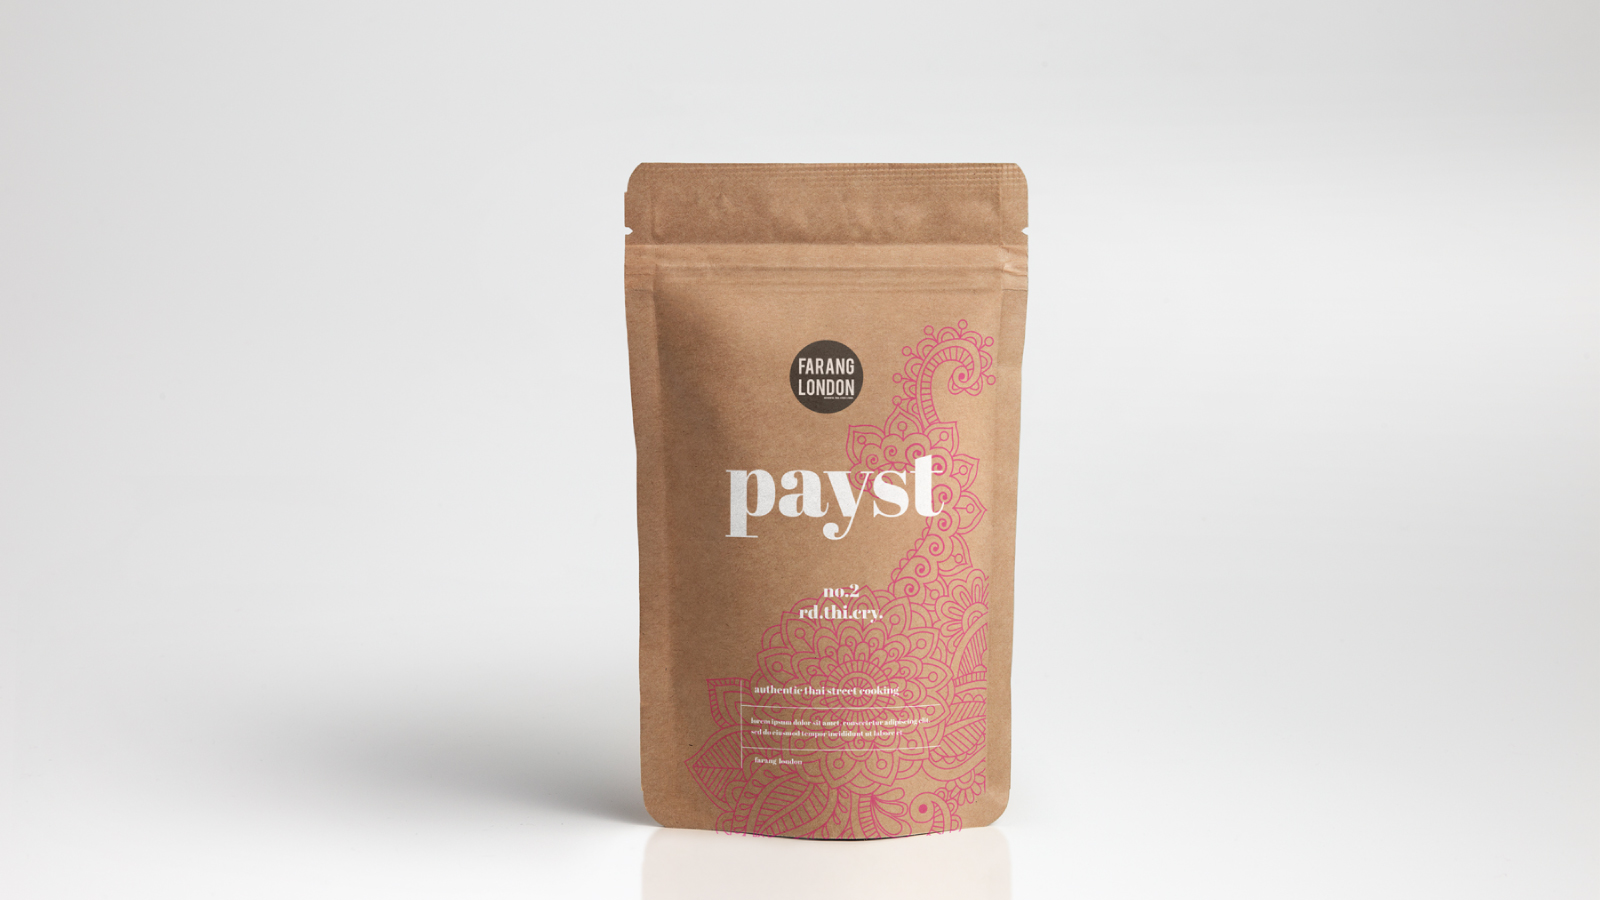 work-payst-package